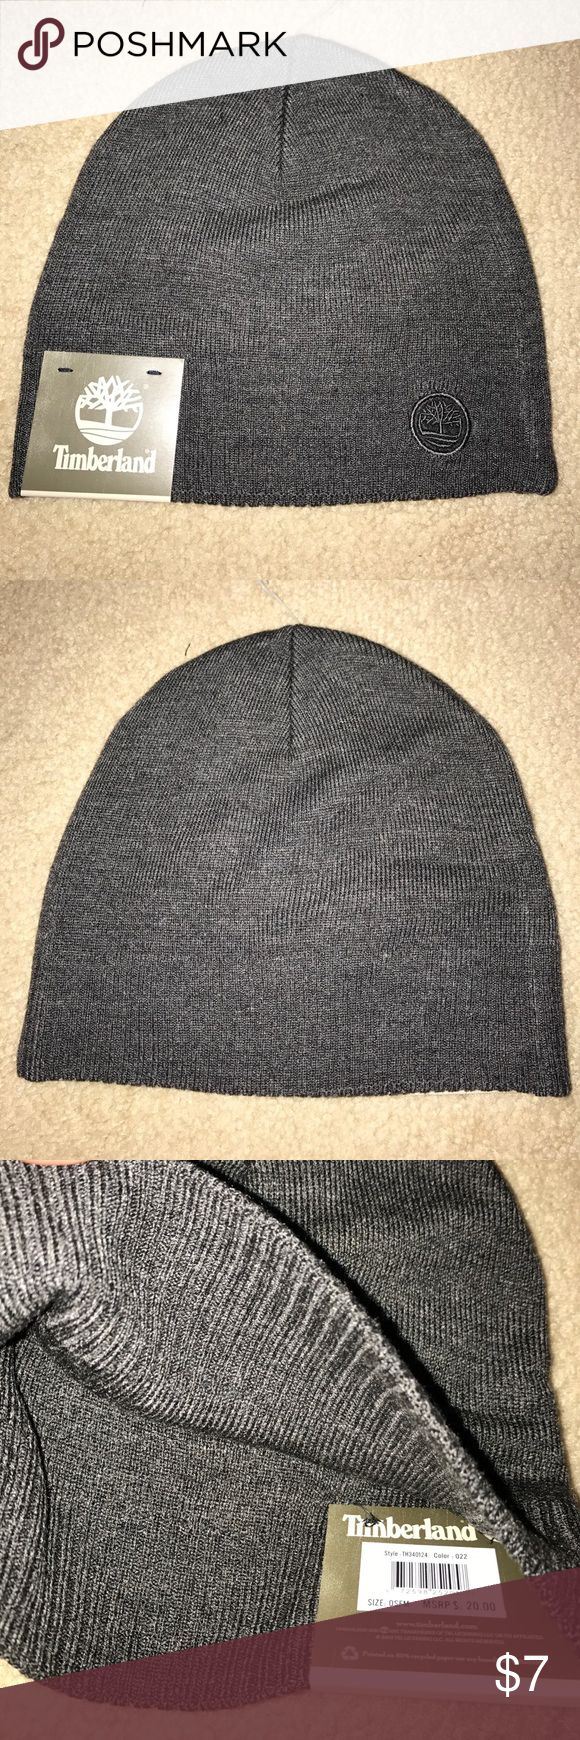 Timberland hat Timberland gray hat. Brand new never worn with tags! Timberland Accessories Hats